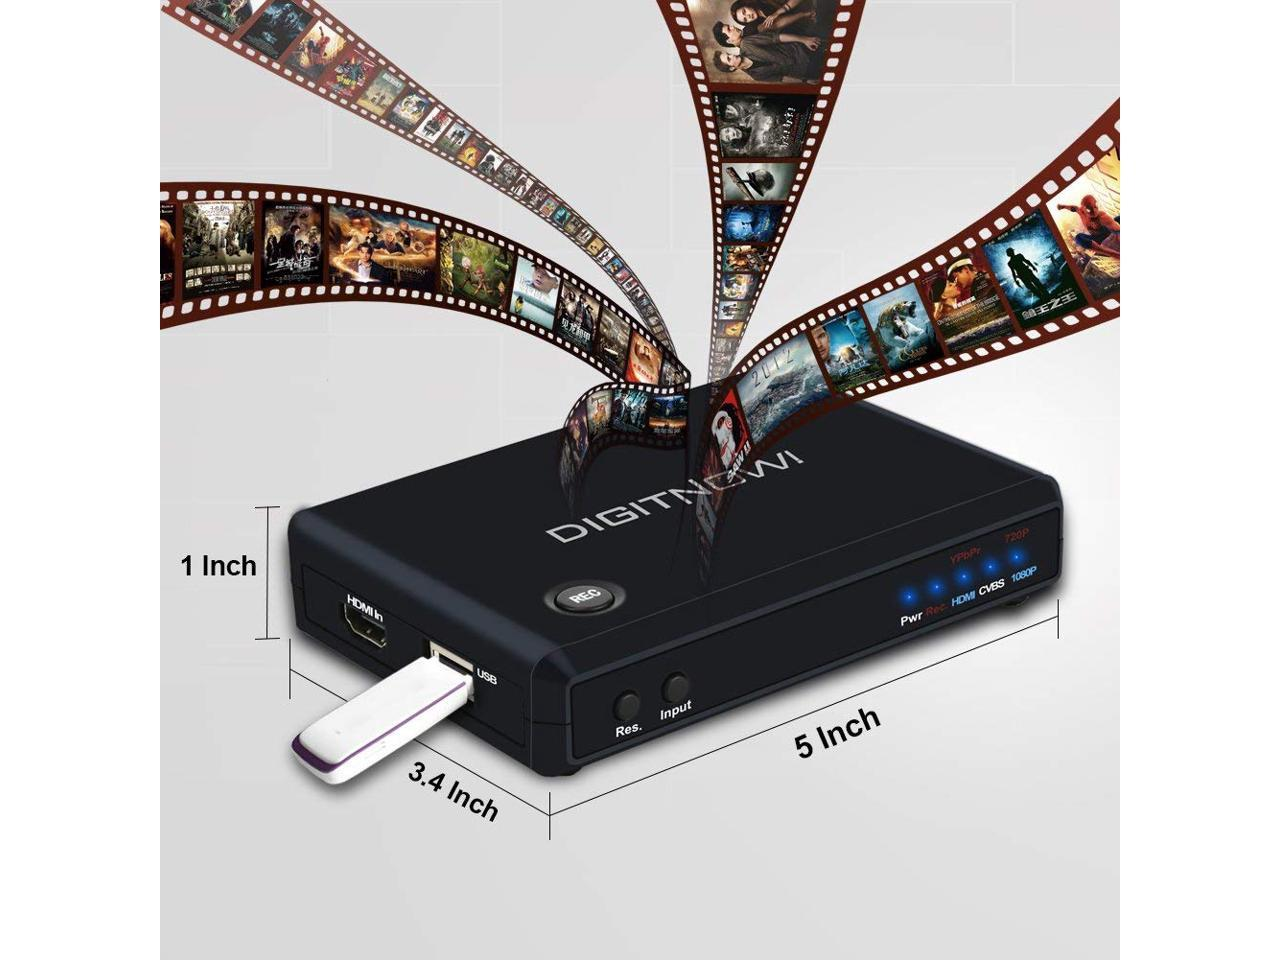 Xbox One//Xbox 360,LiveTV,PVR DVR and More,Support HDMI//YPbPr//CVBS Input and HDMI Output,Full HD 1080p 30fps HD Game Capture//HD Video Capture Device HDMI Video Converter//Recorder for PS4